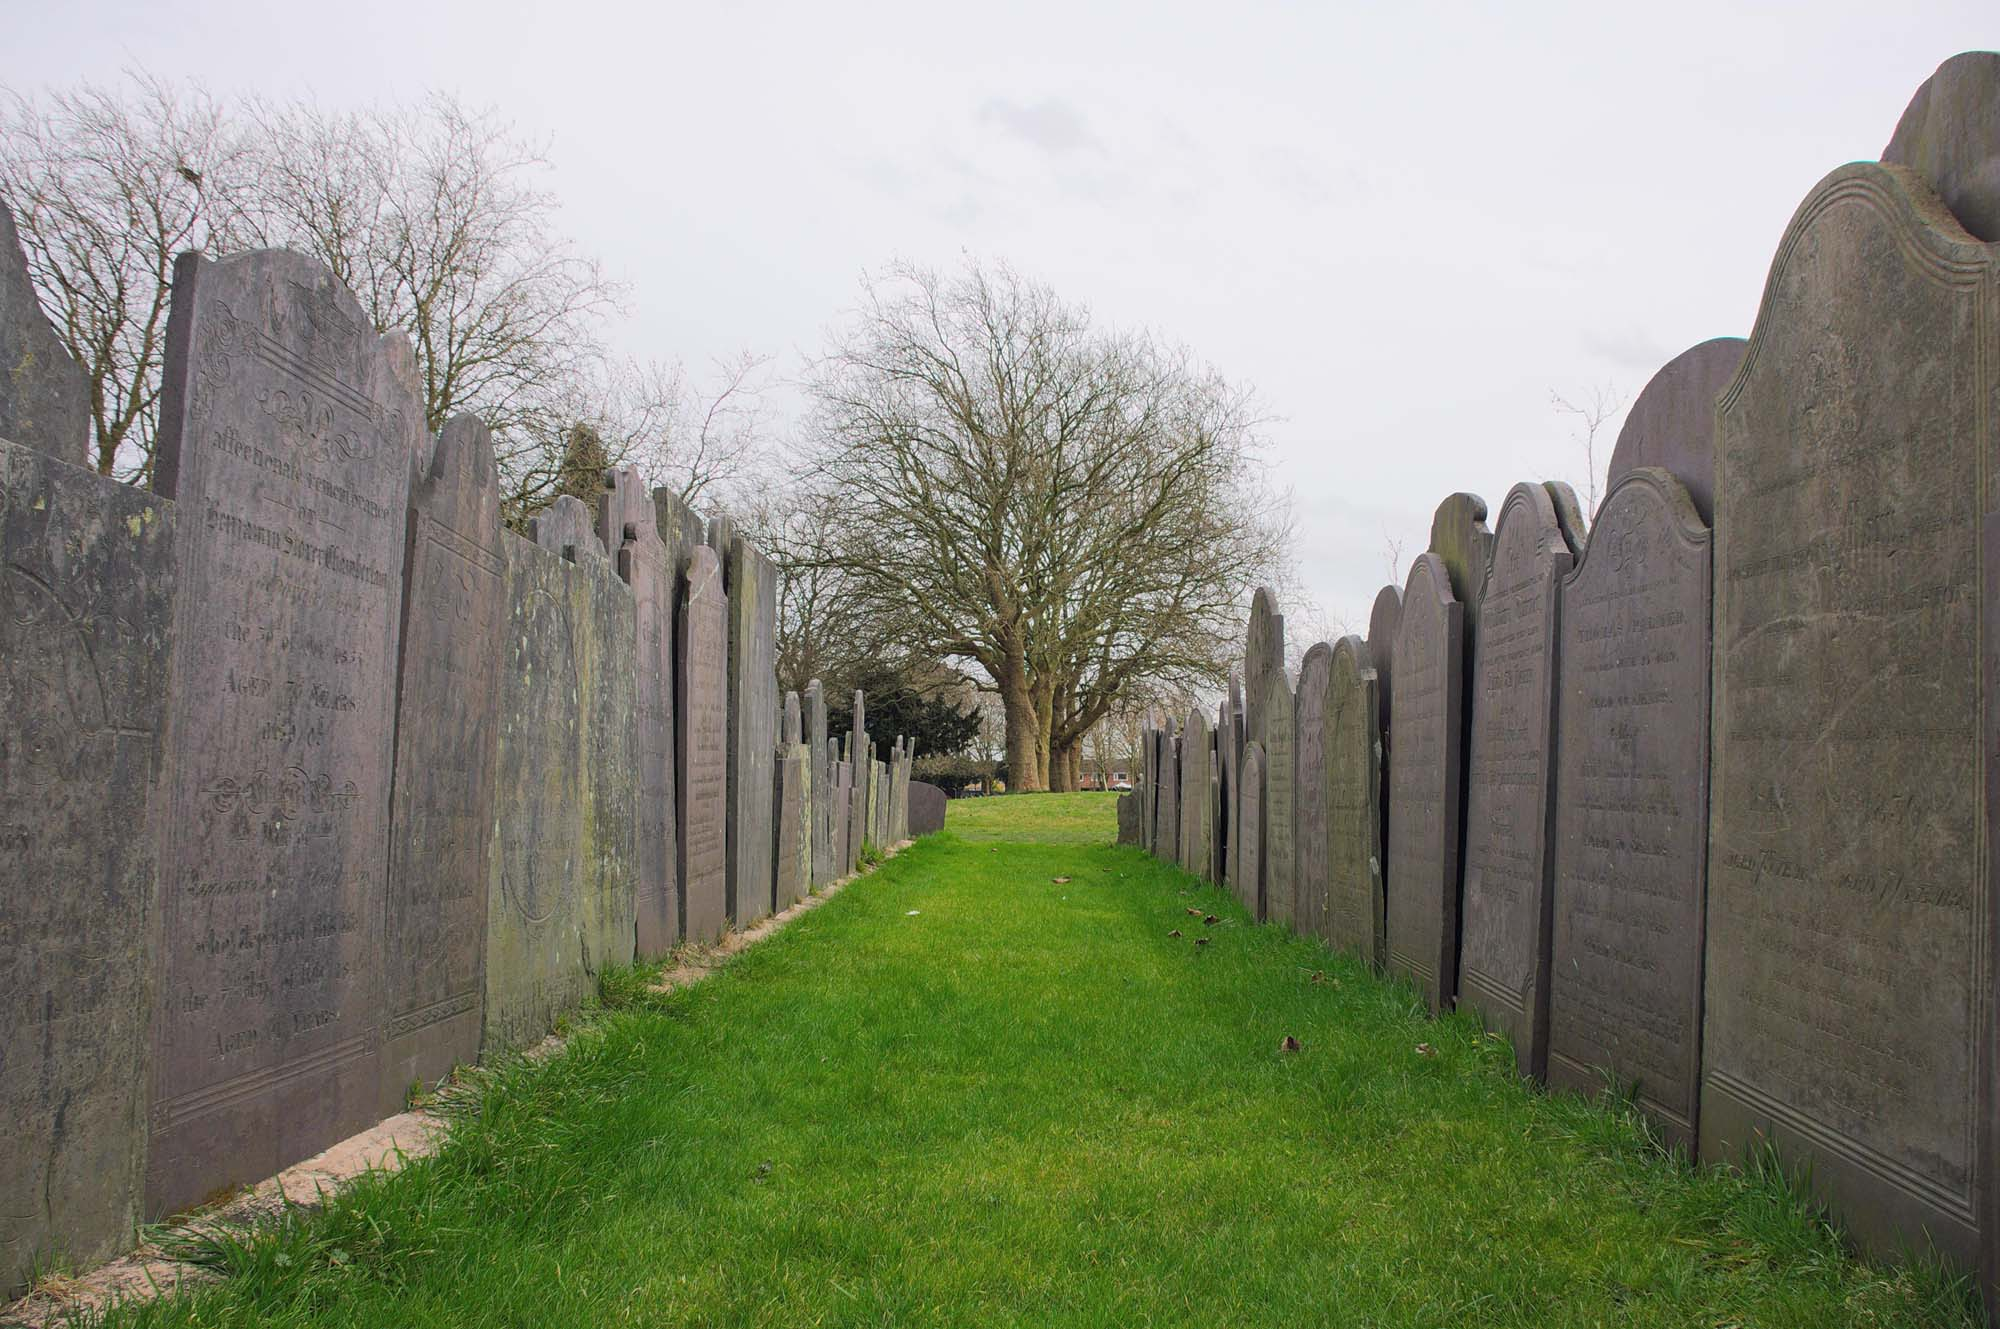 Memorial stones were relocated to Saffron Hill Cemetery during works to the Leicester Cathedral grounds in the early 2000s -